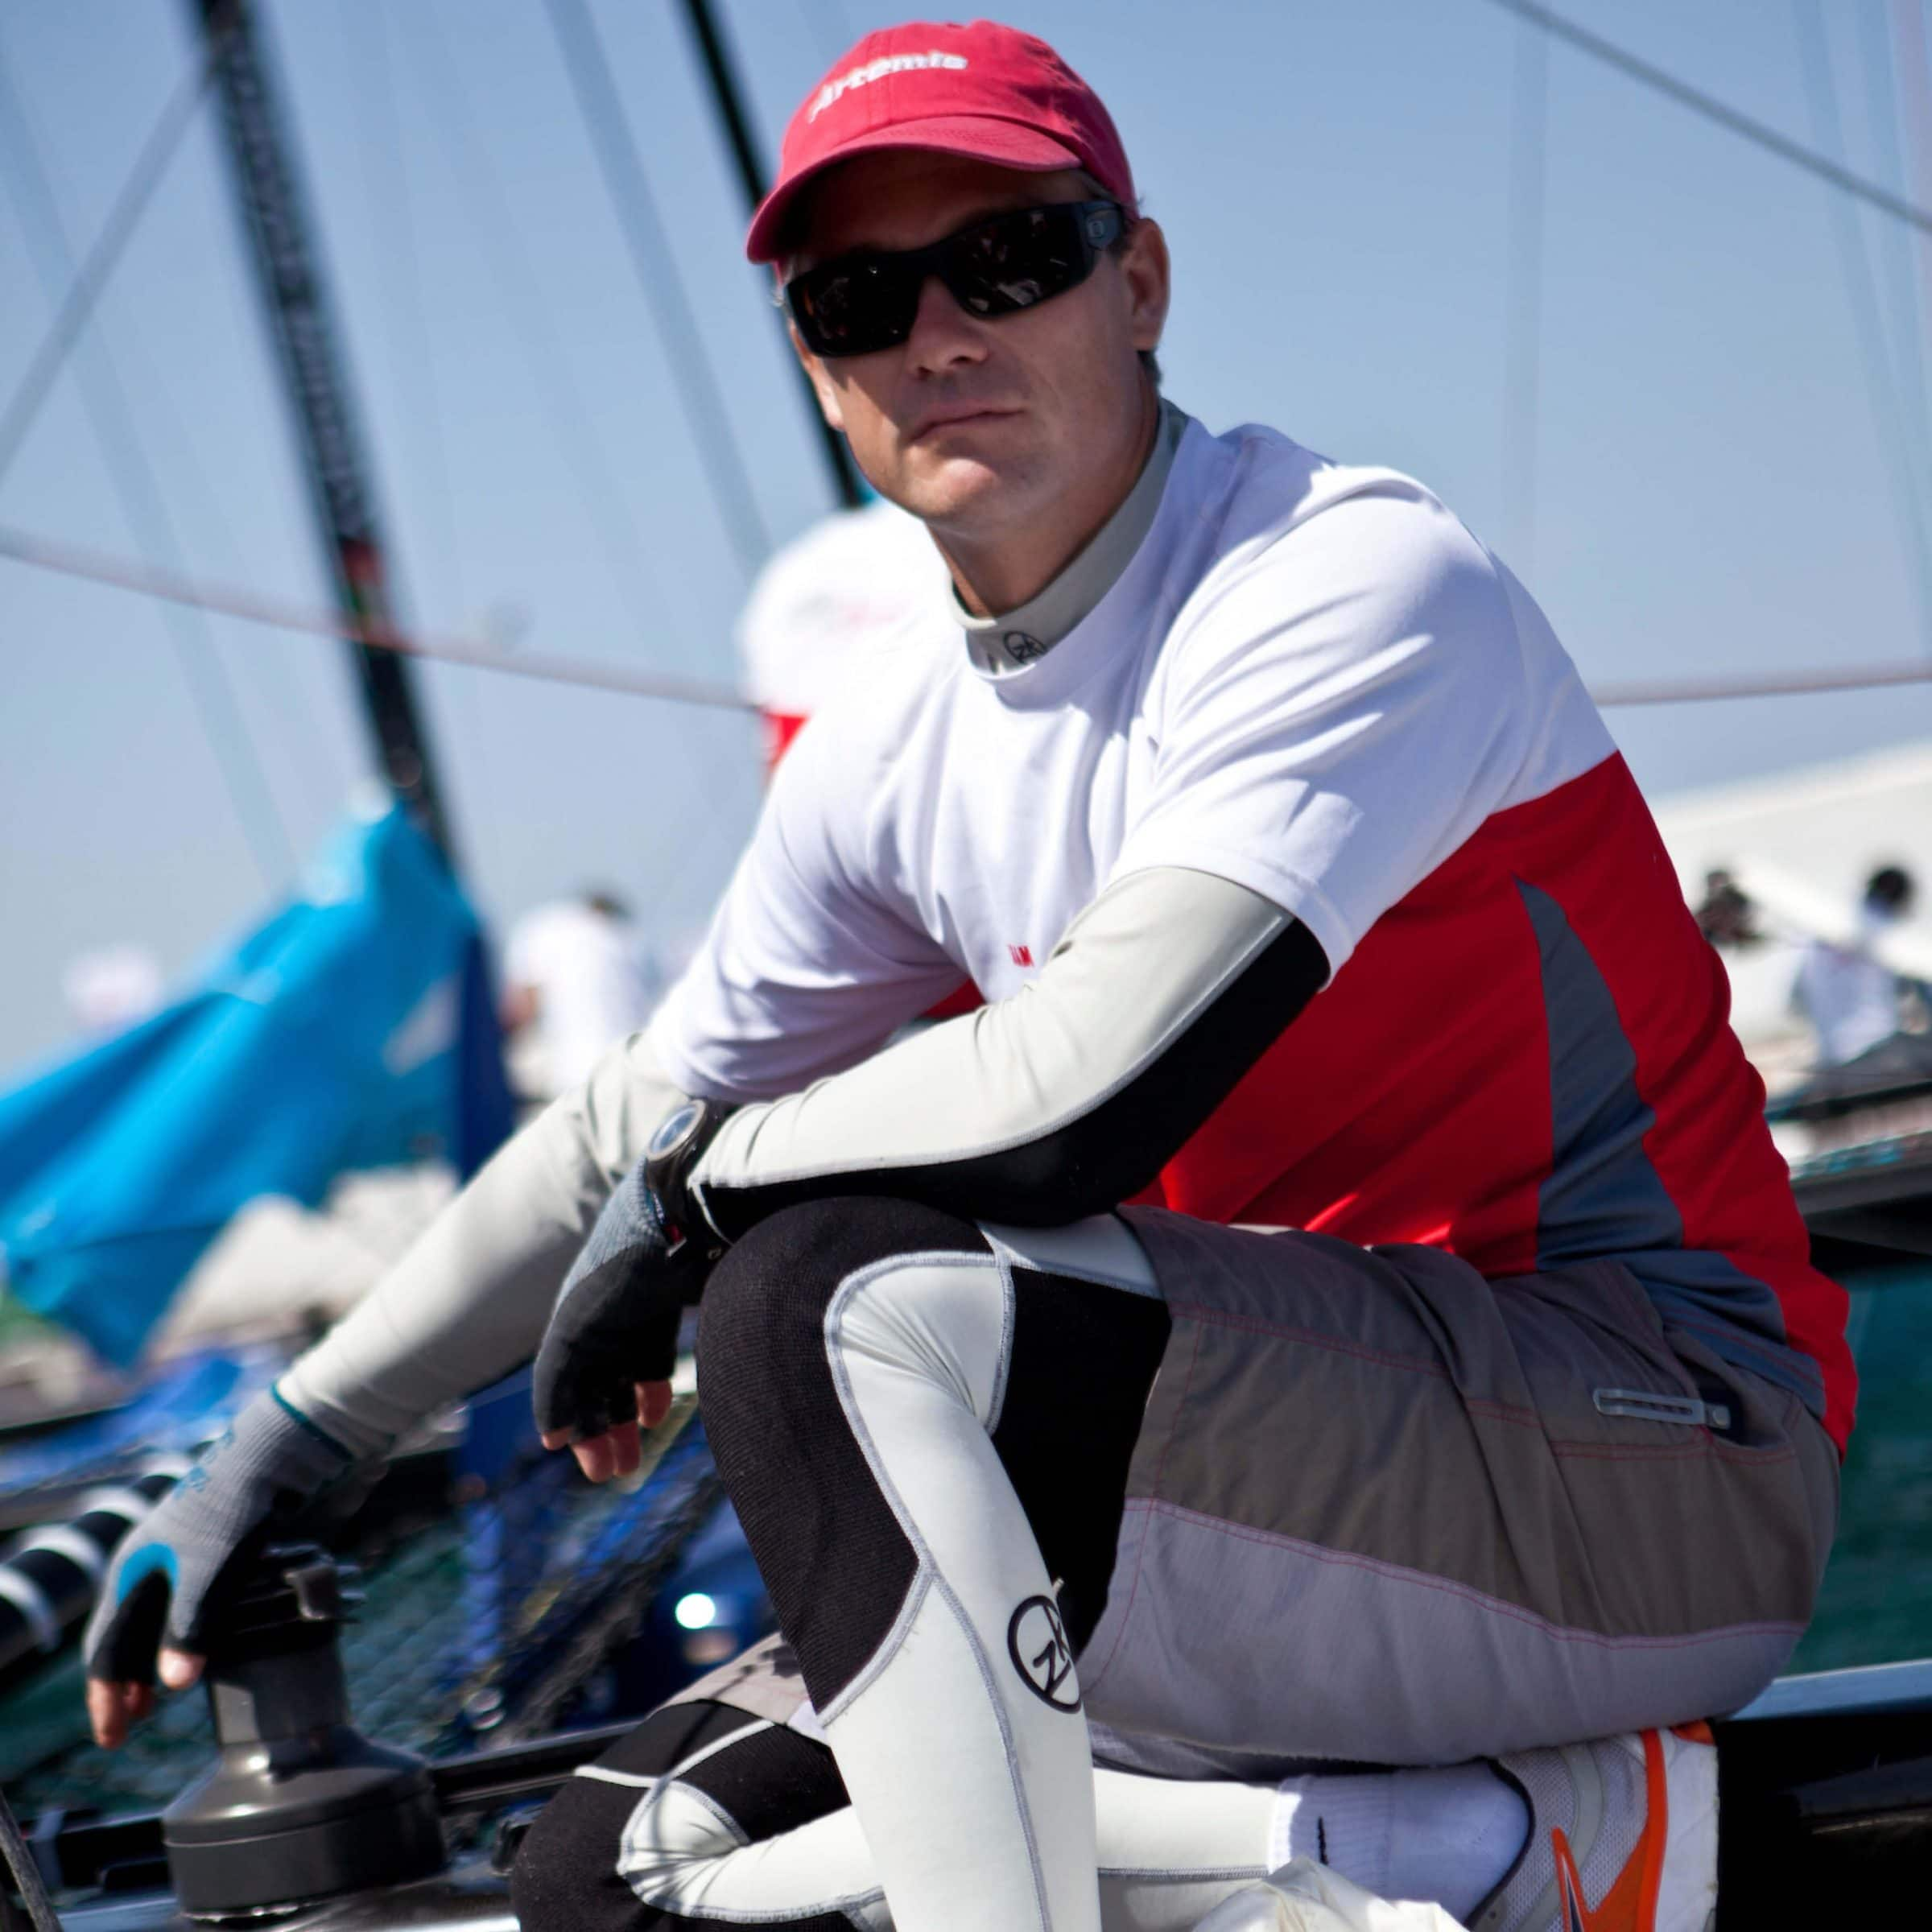 andy fethers americas cup sailor and exective officer of swan river sailing for team building programs